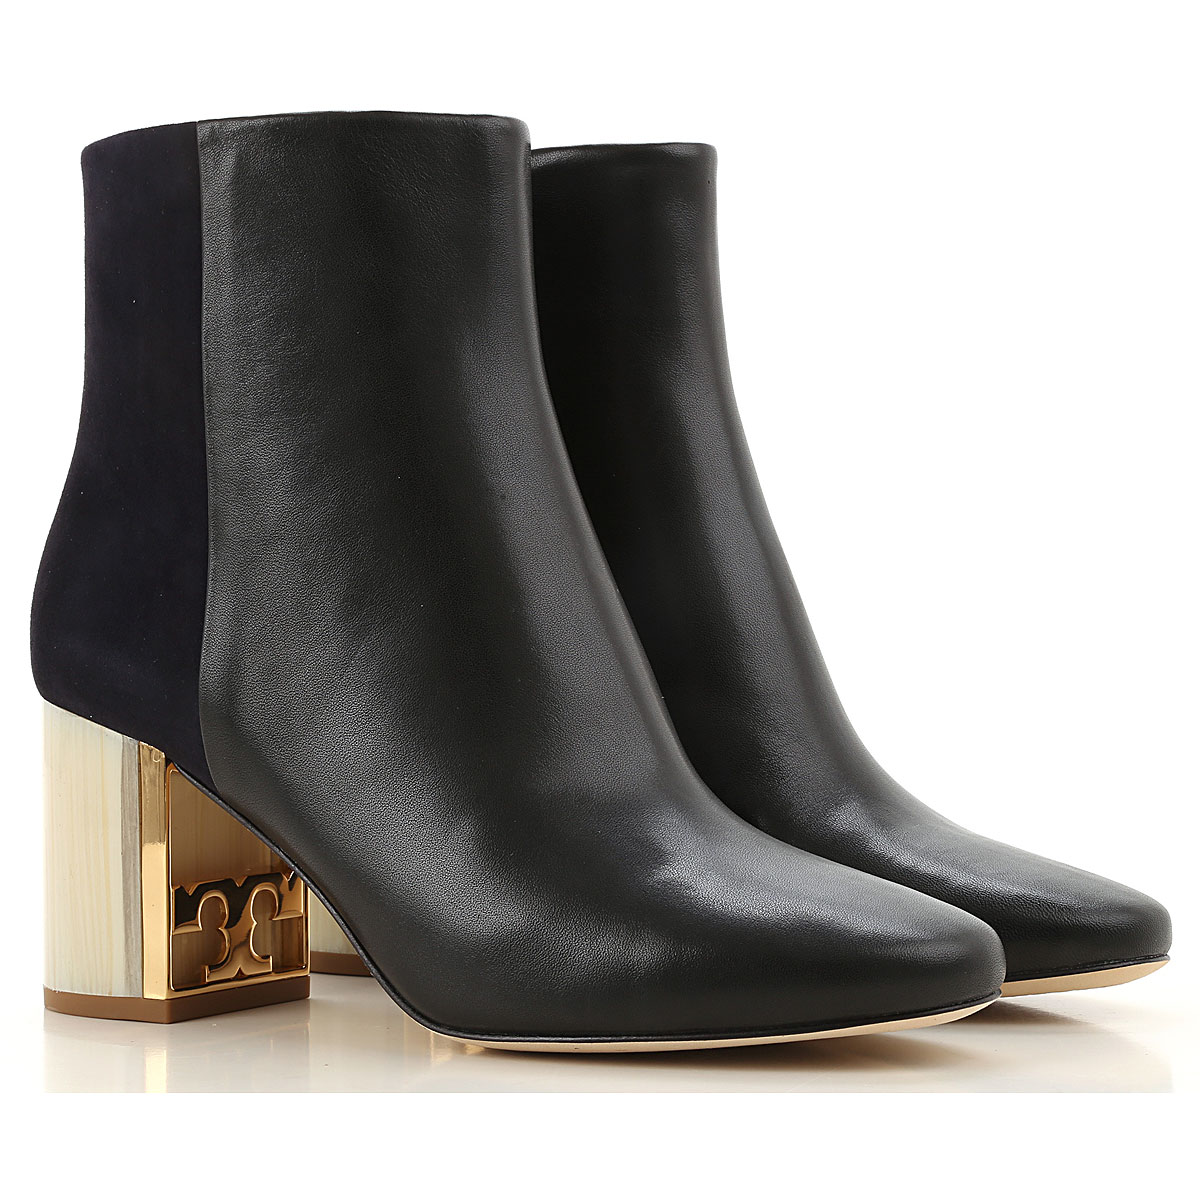 Tory Burch Boots for Women, Booties On Sale, Black, Leather, 2019, 6 7 8